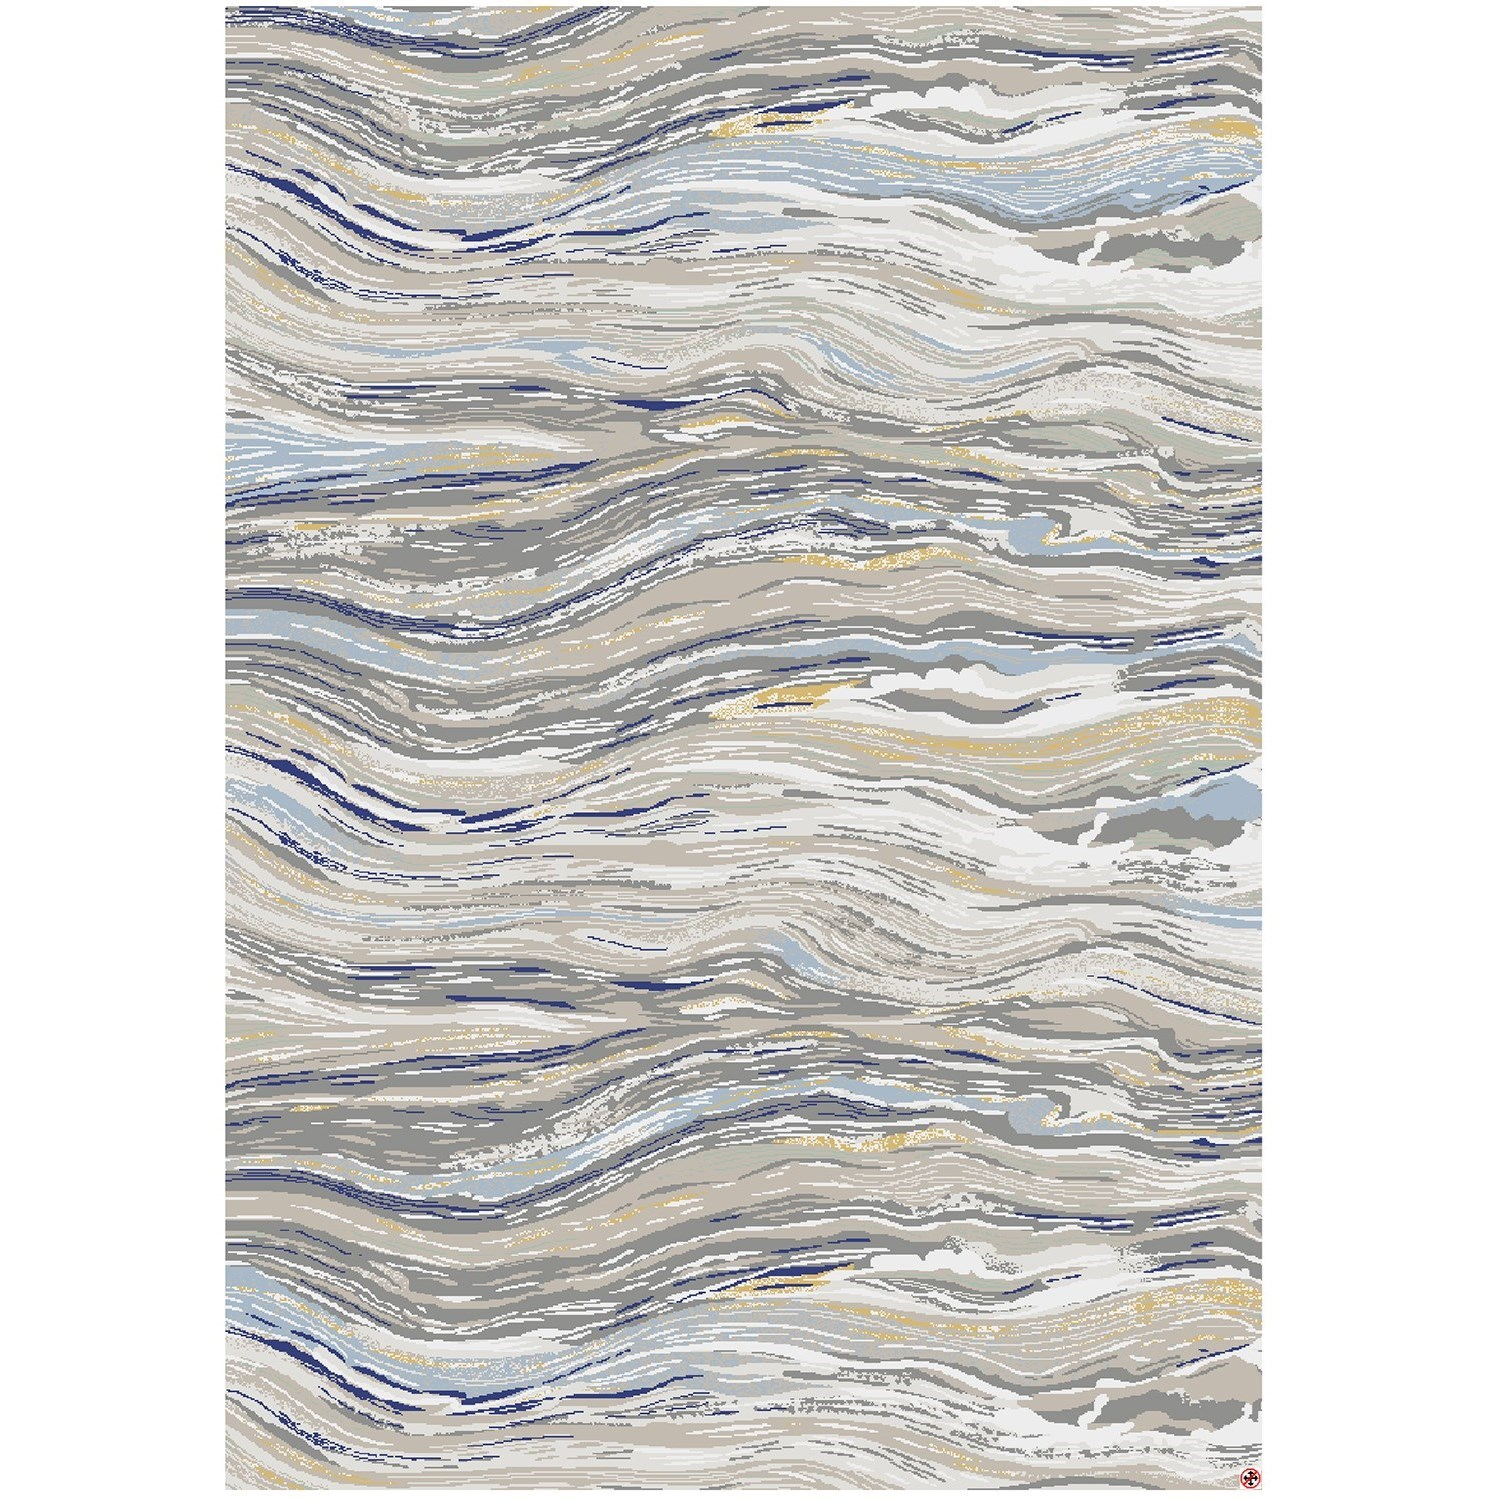 """Enigma 9' 6""""x12' 11"""" Rectangle Striped Area Rug by Karastan Rugs at Darvin Furniture"""